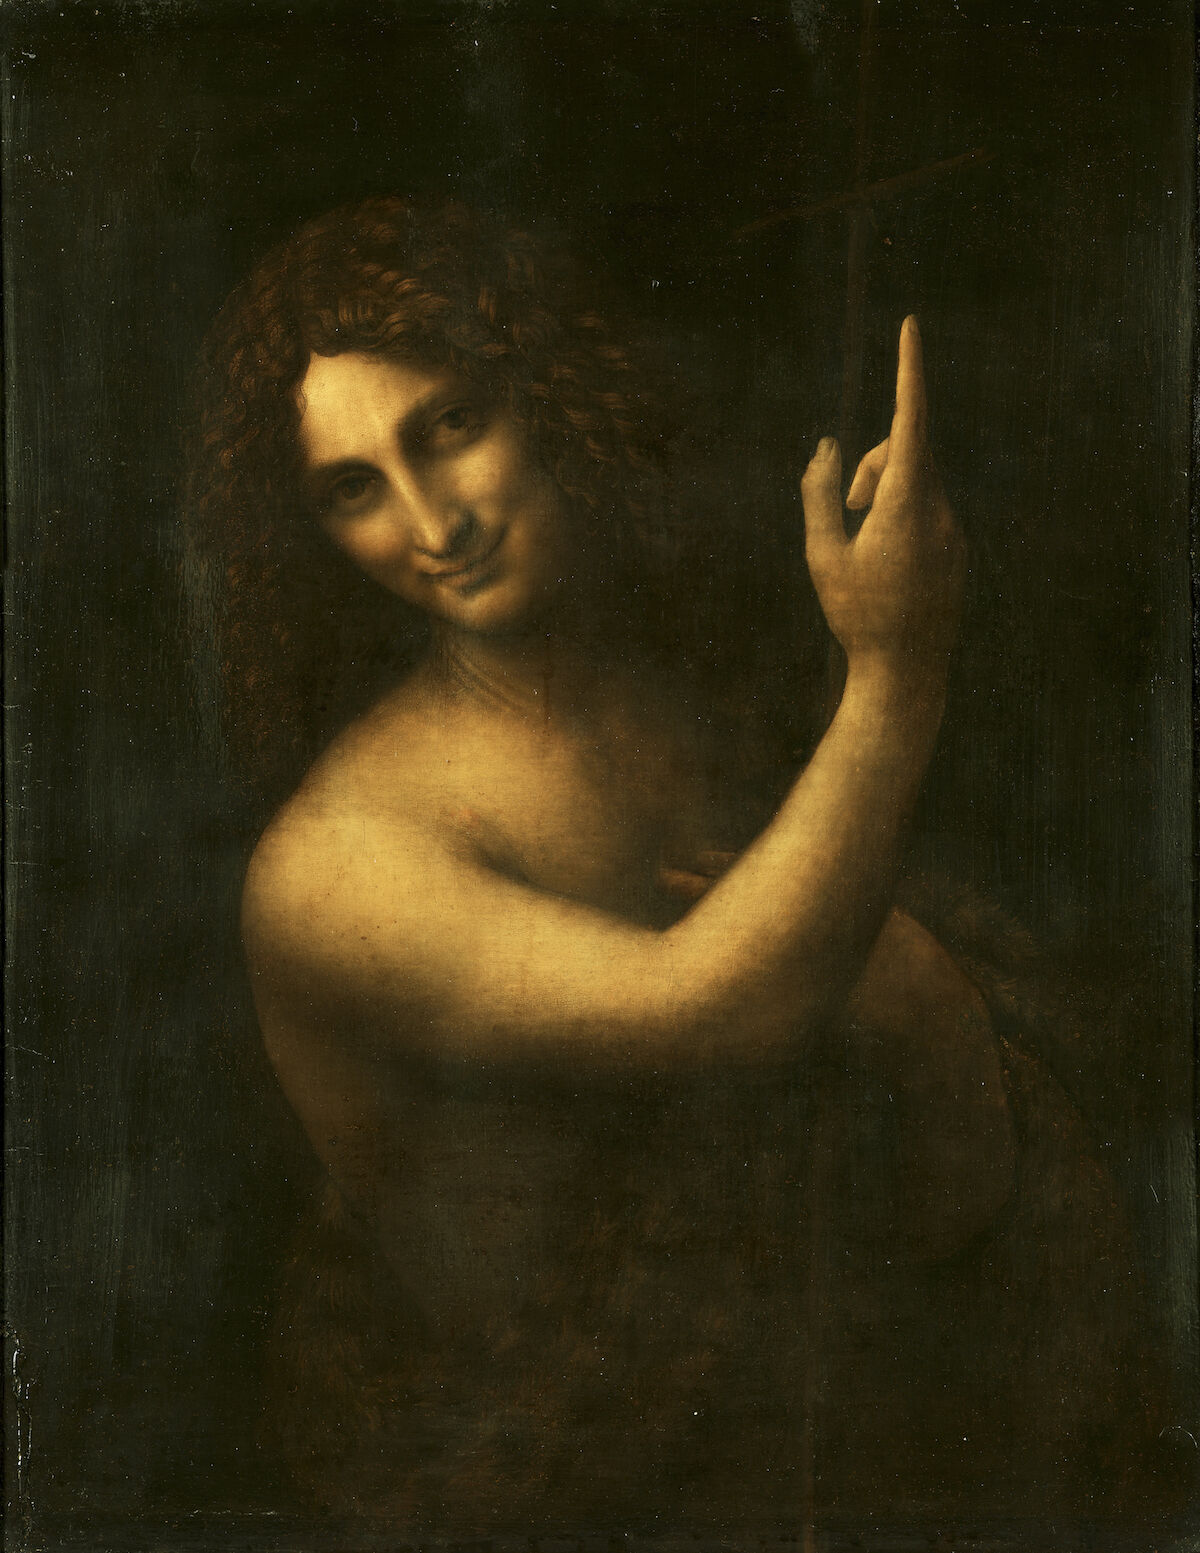 Leonardo da Vinci, Saint John the Baptist, 1513–16. Via Wikimedia Commons.